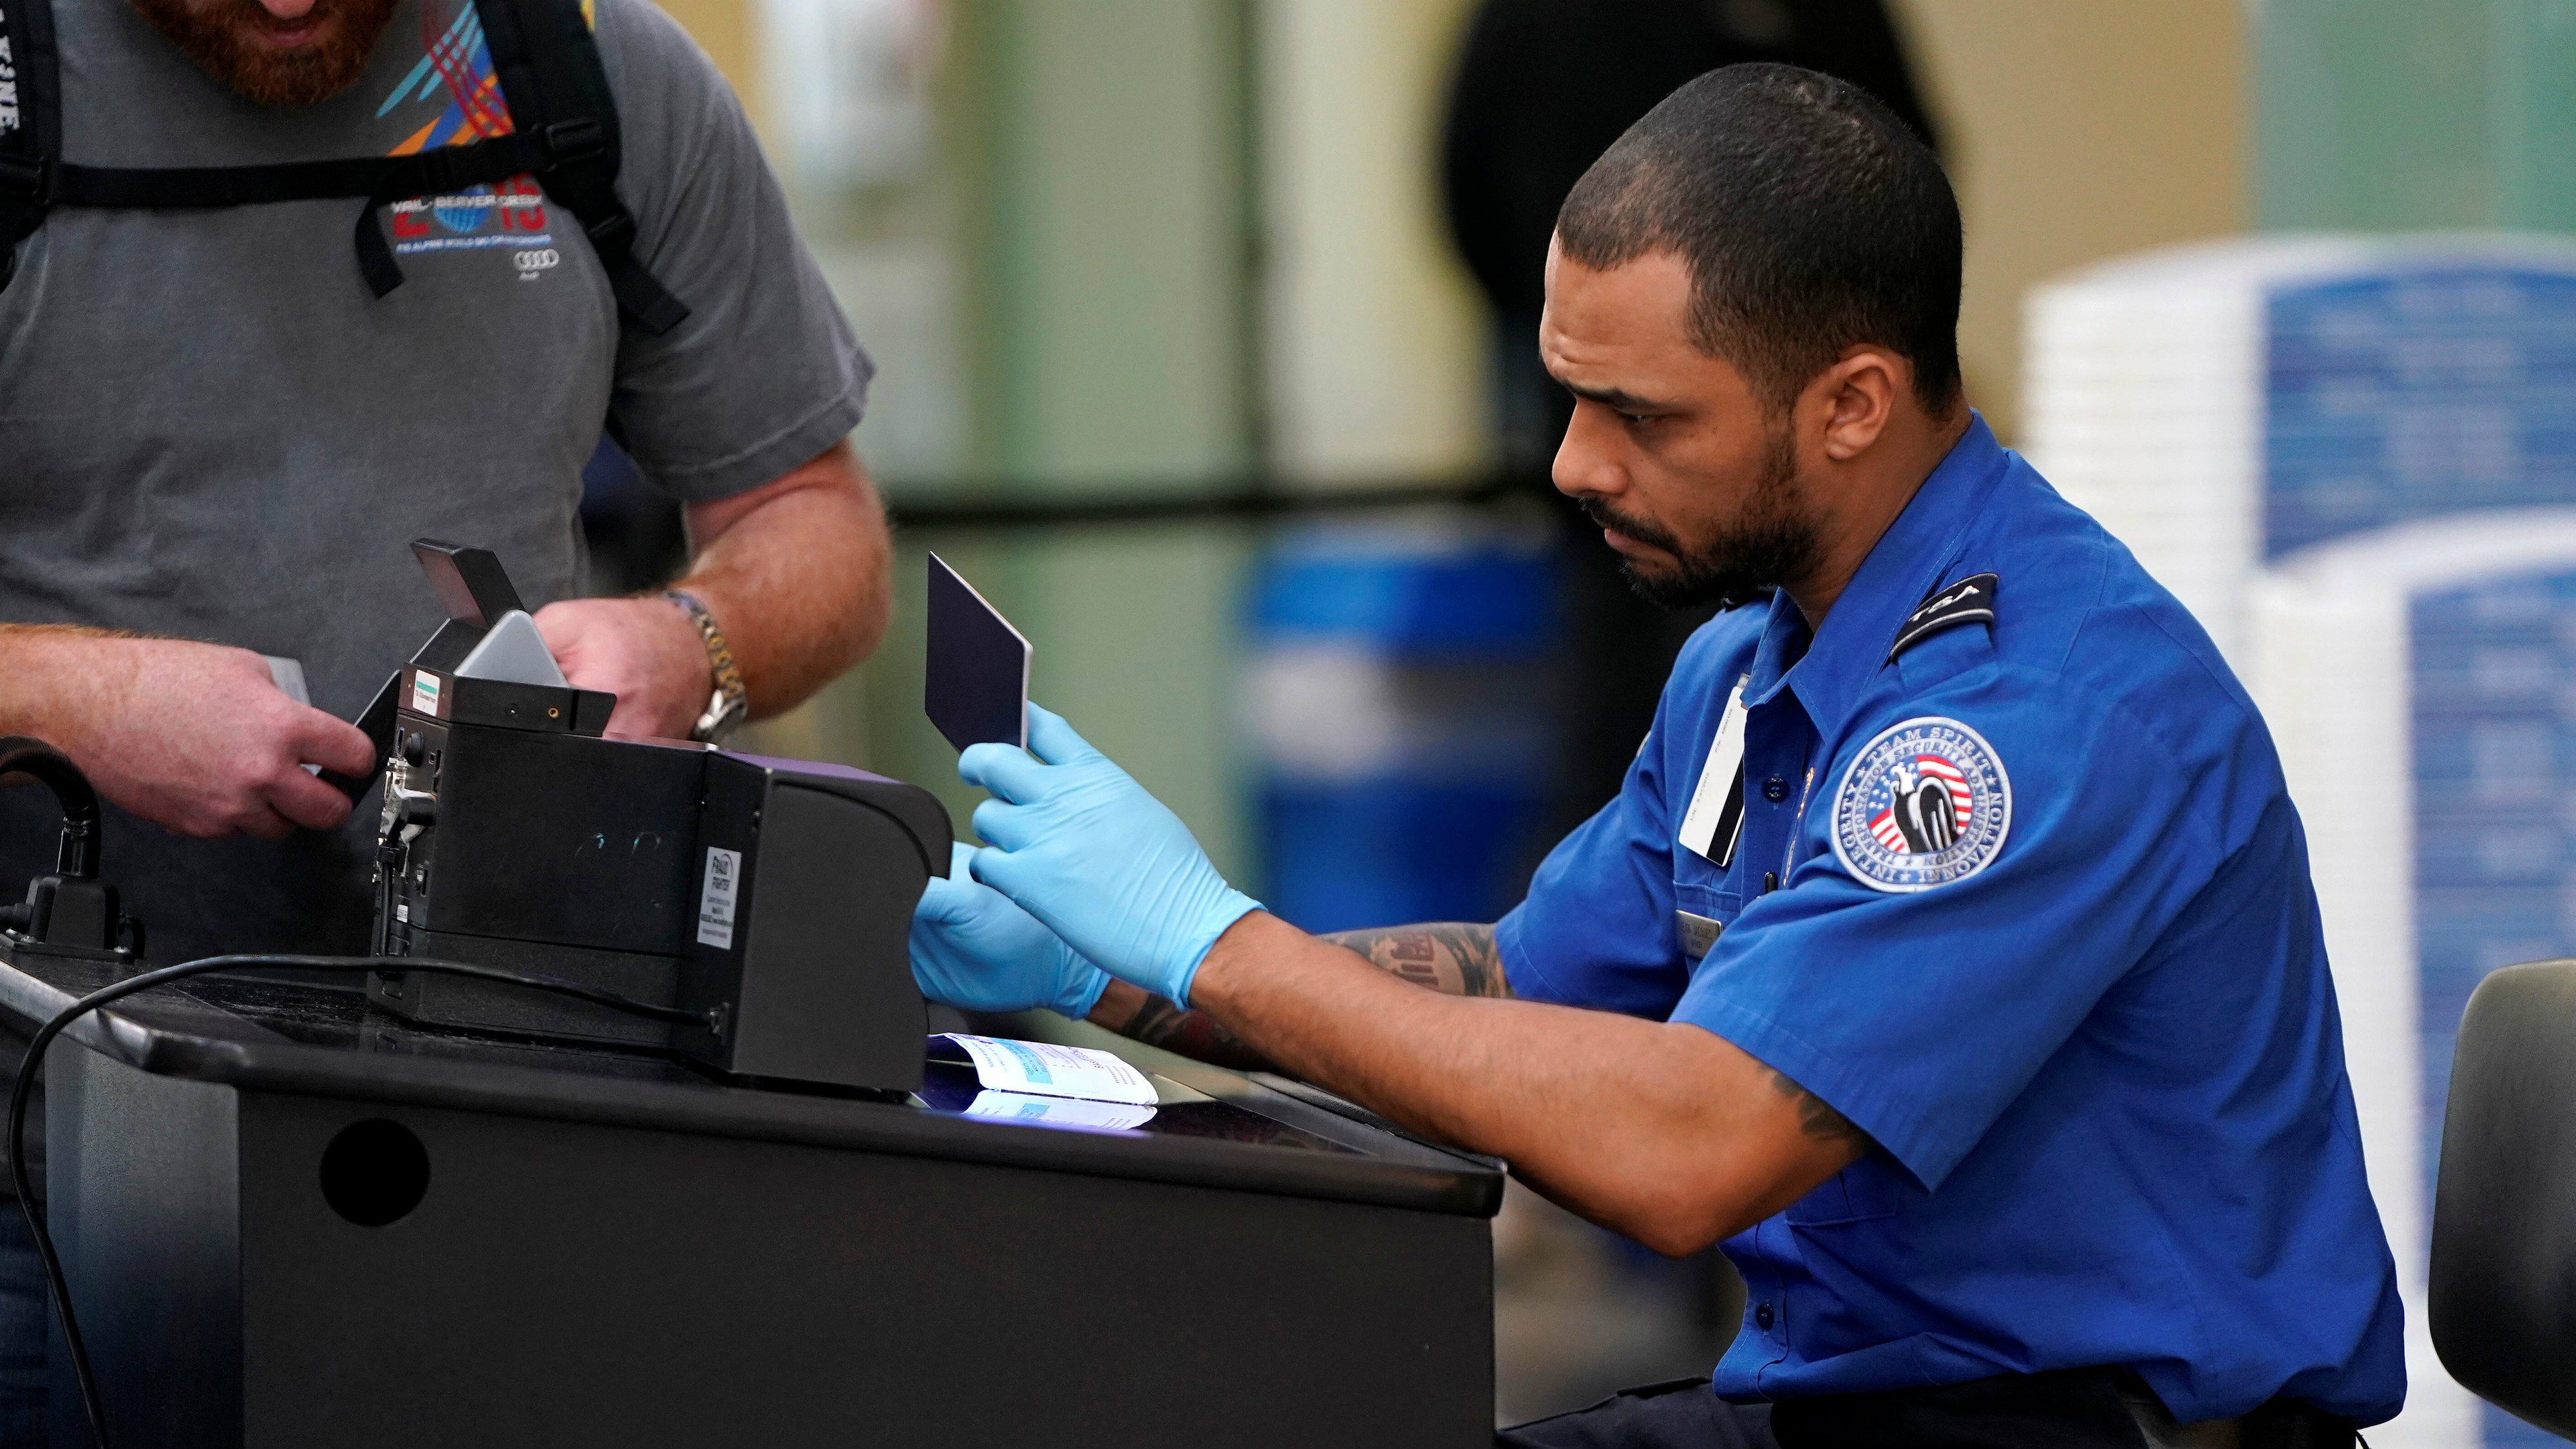 TSA agent checks document